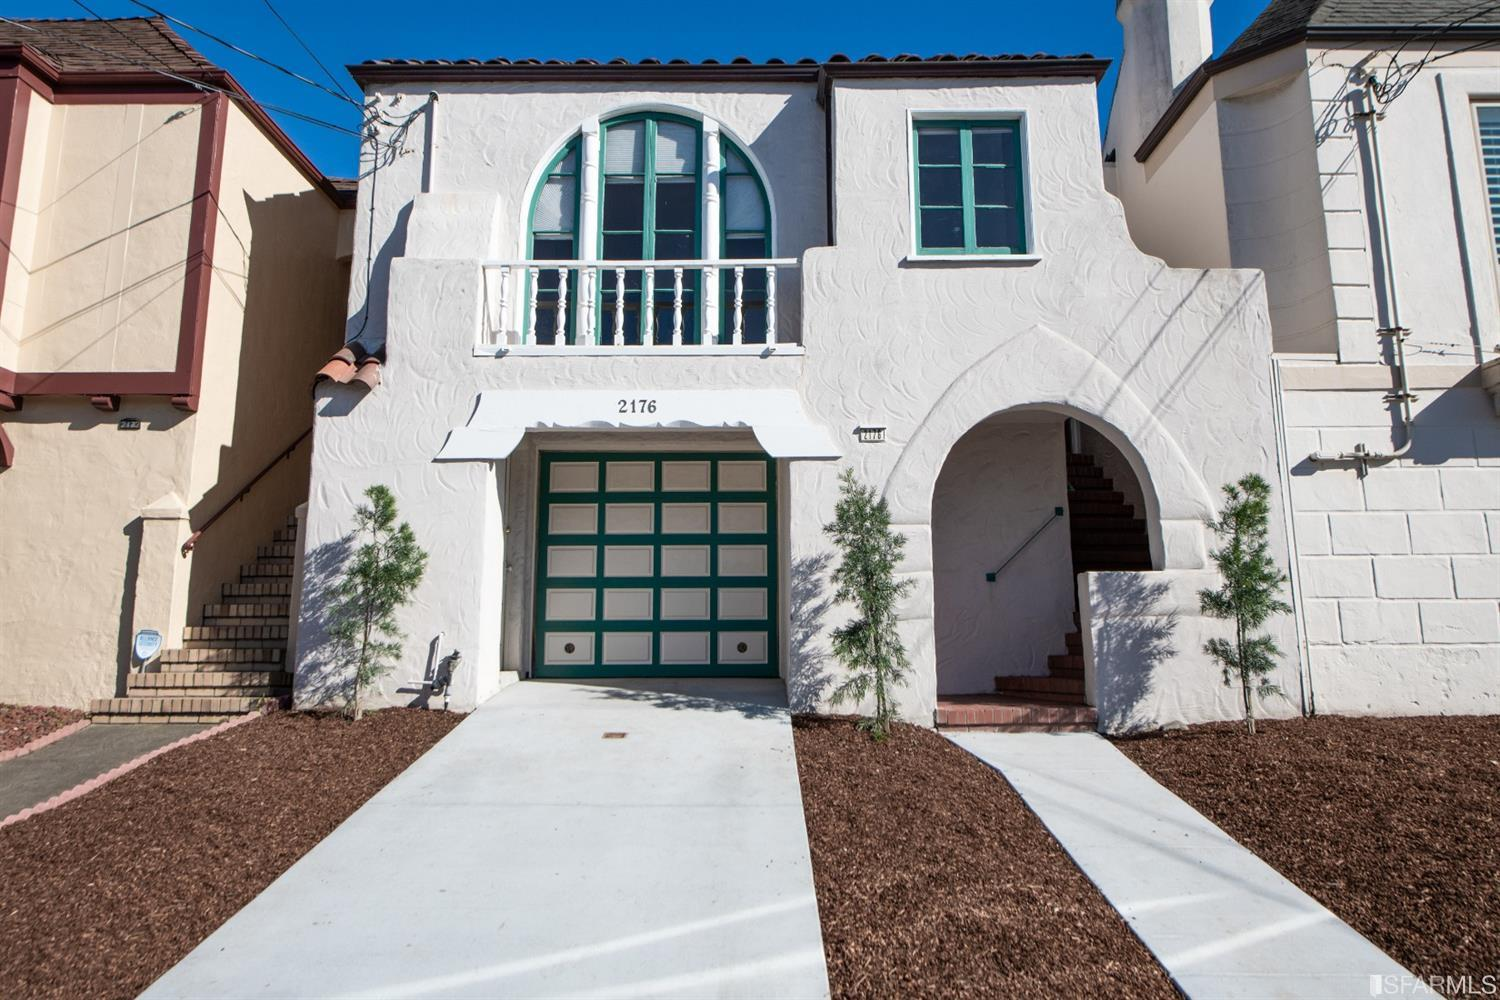 Front facade with a new driveway and walkway